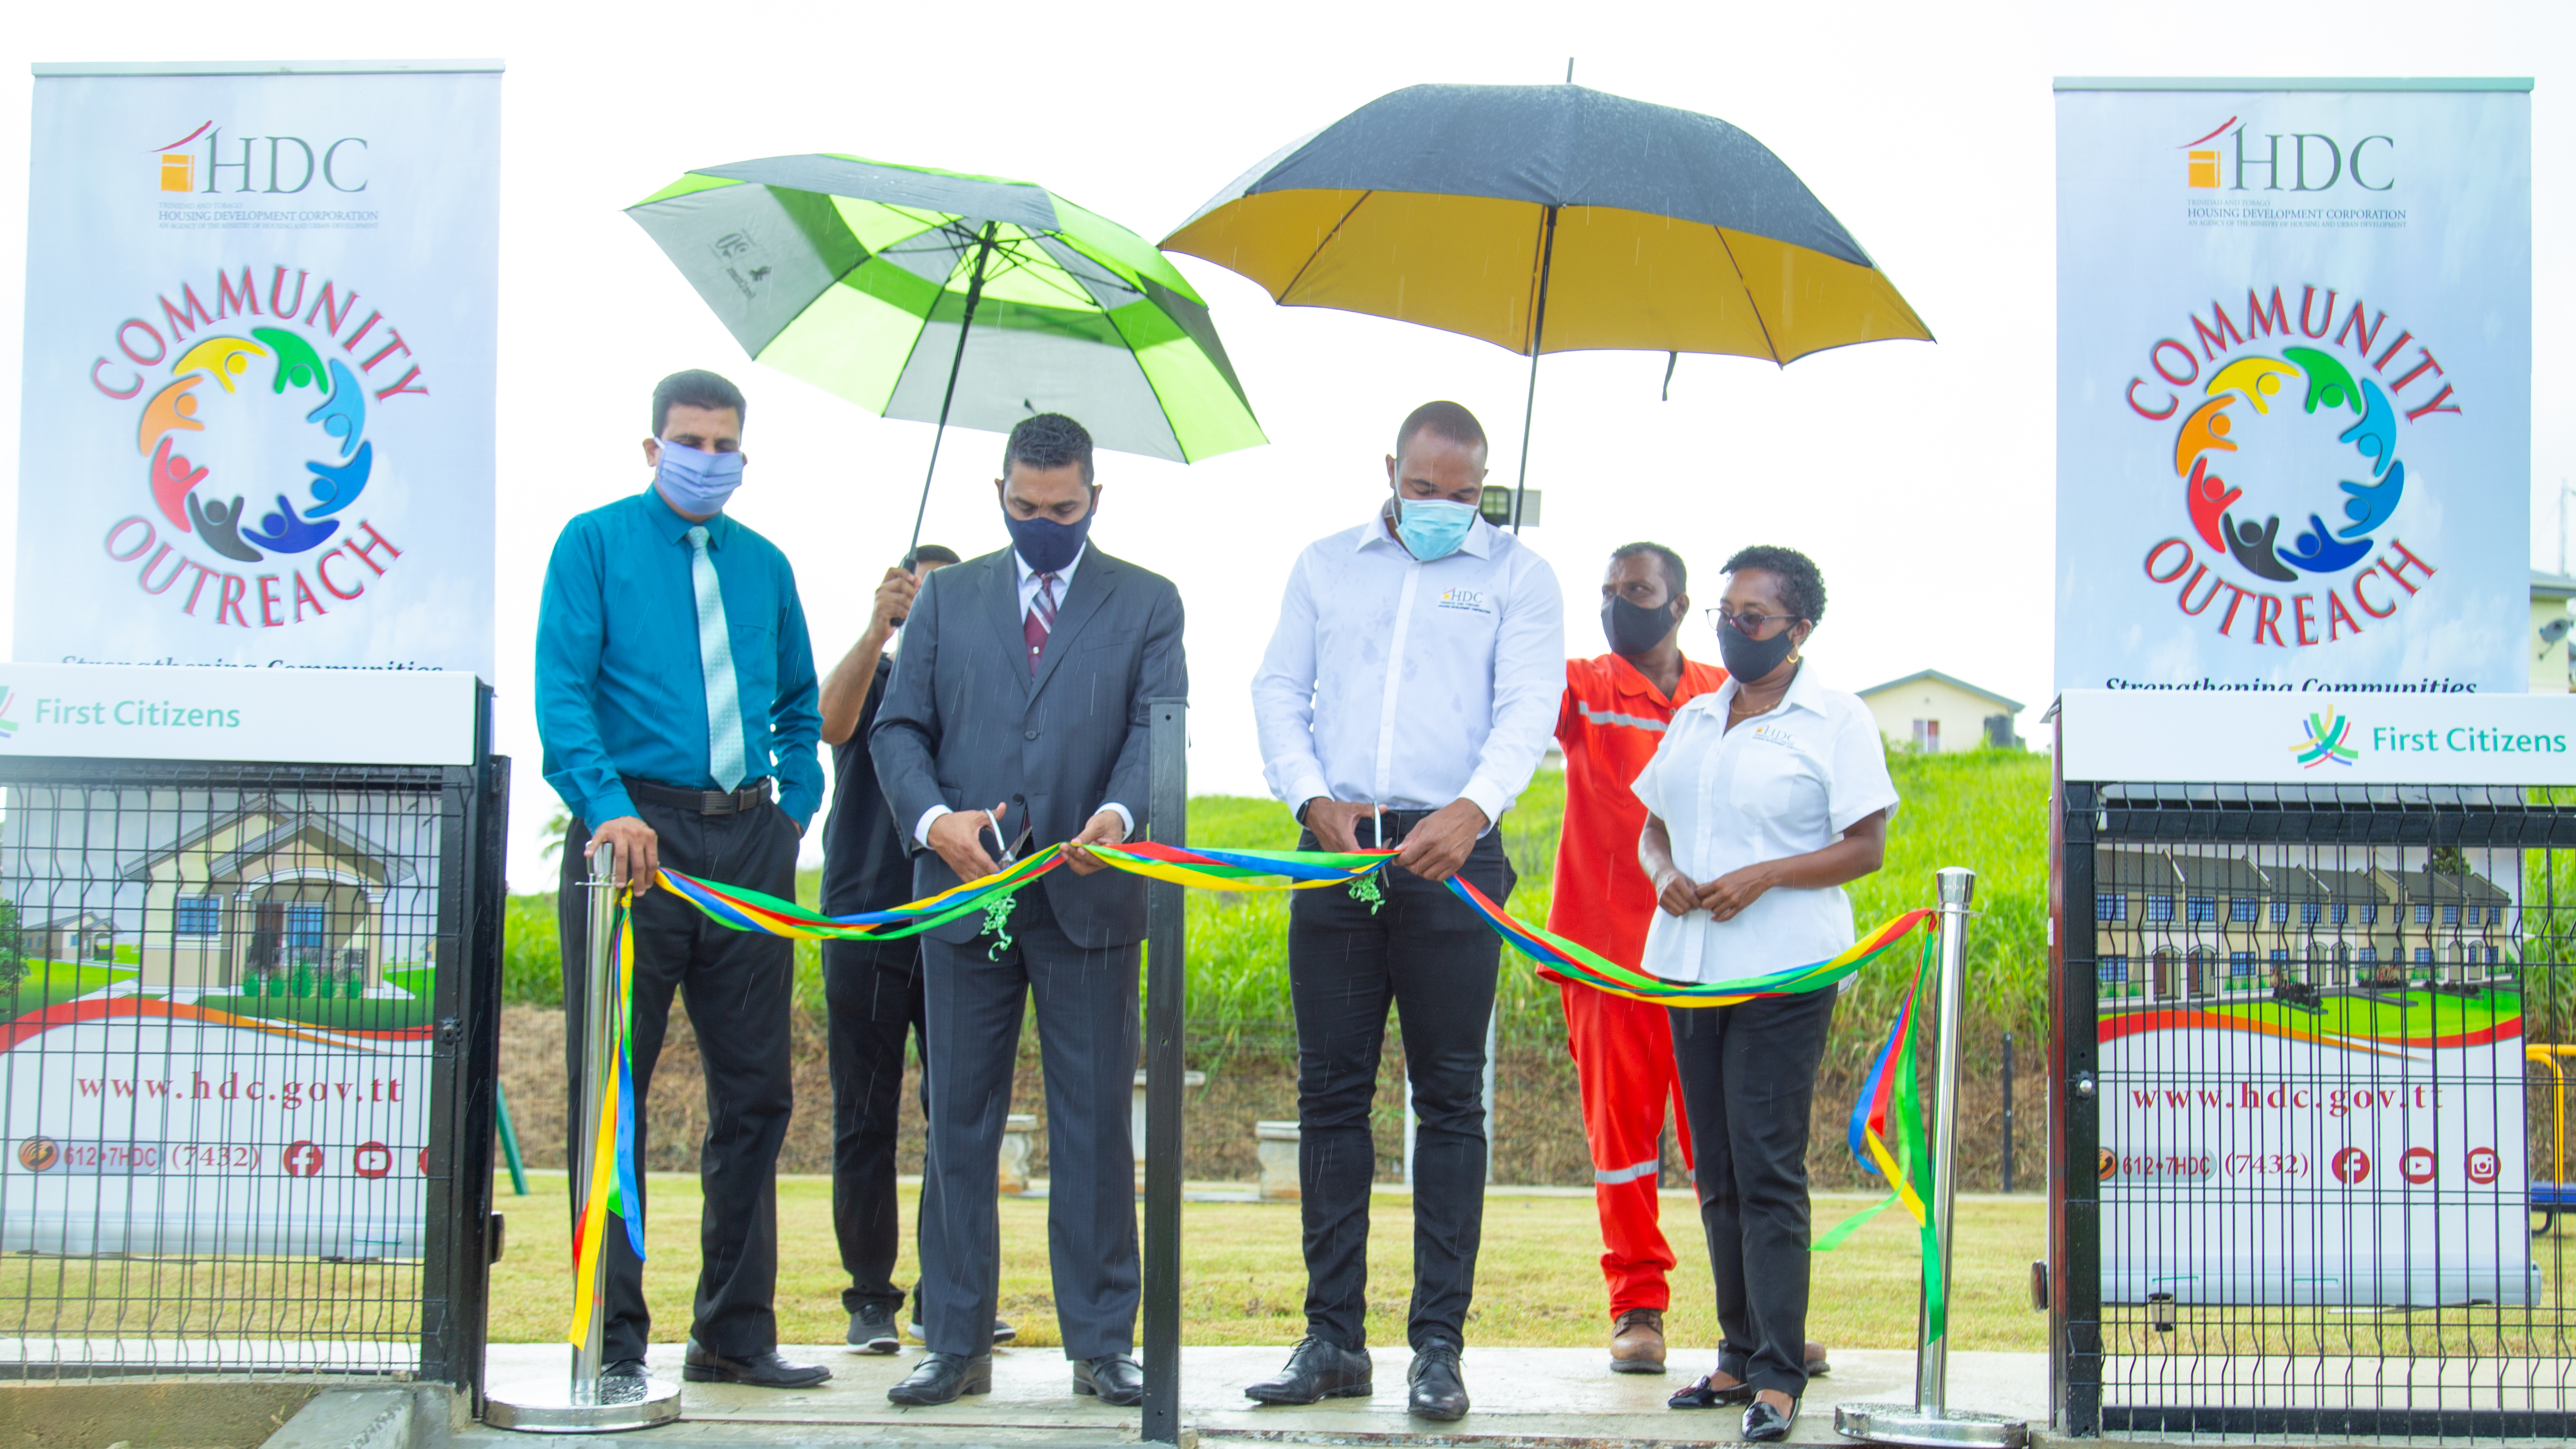 HDC and First Citizens partner to construct play park